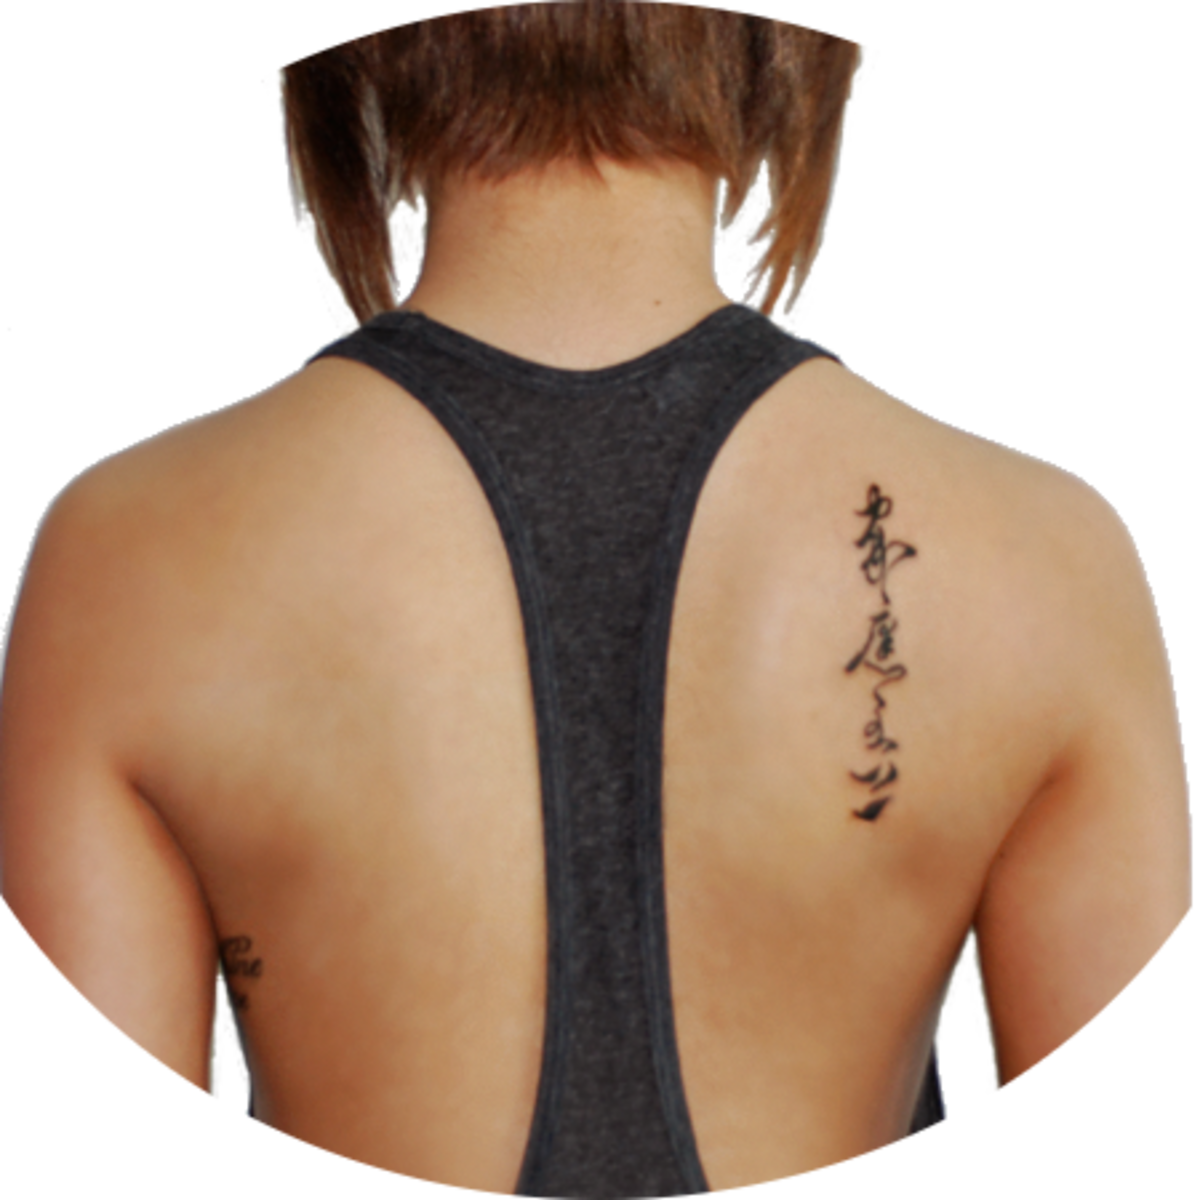 Chinese Tattoo Meanings: Short Phrases, Sayings, Awesome Words